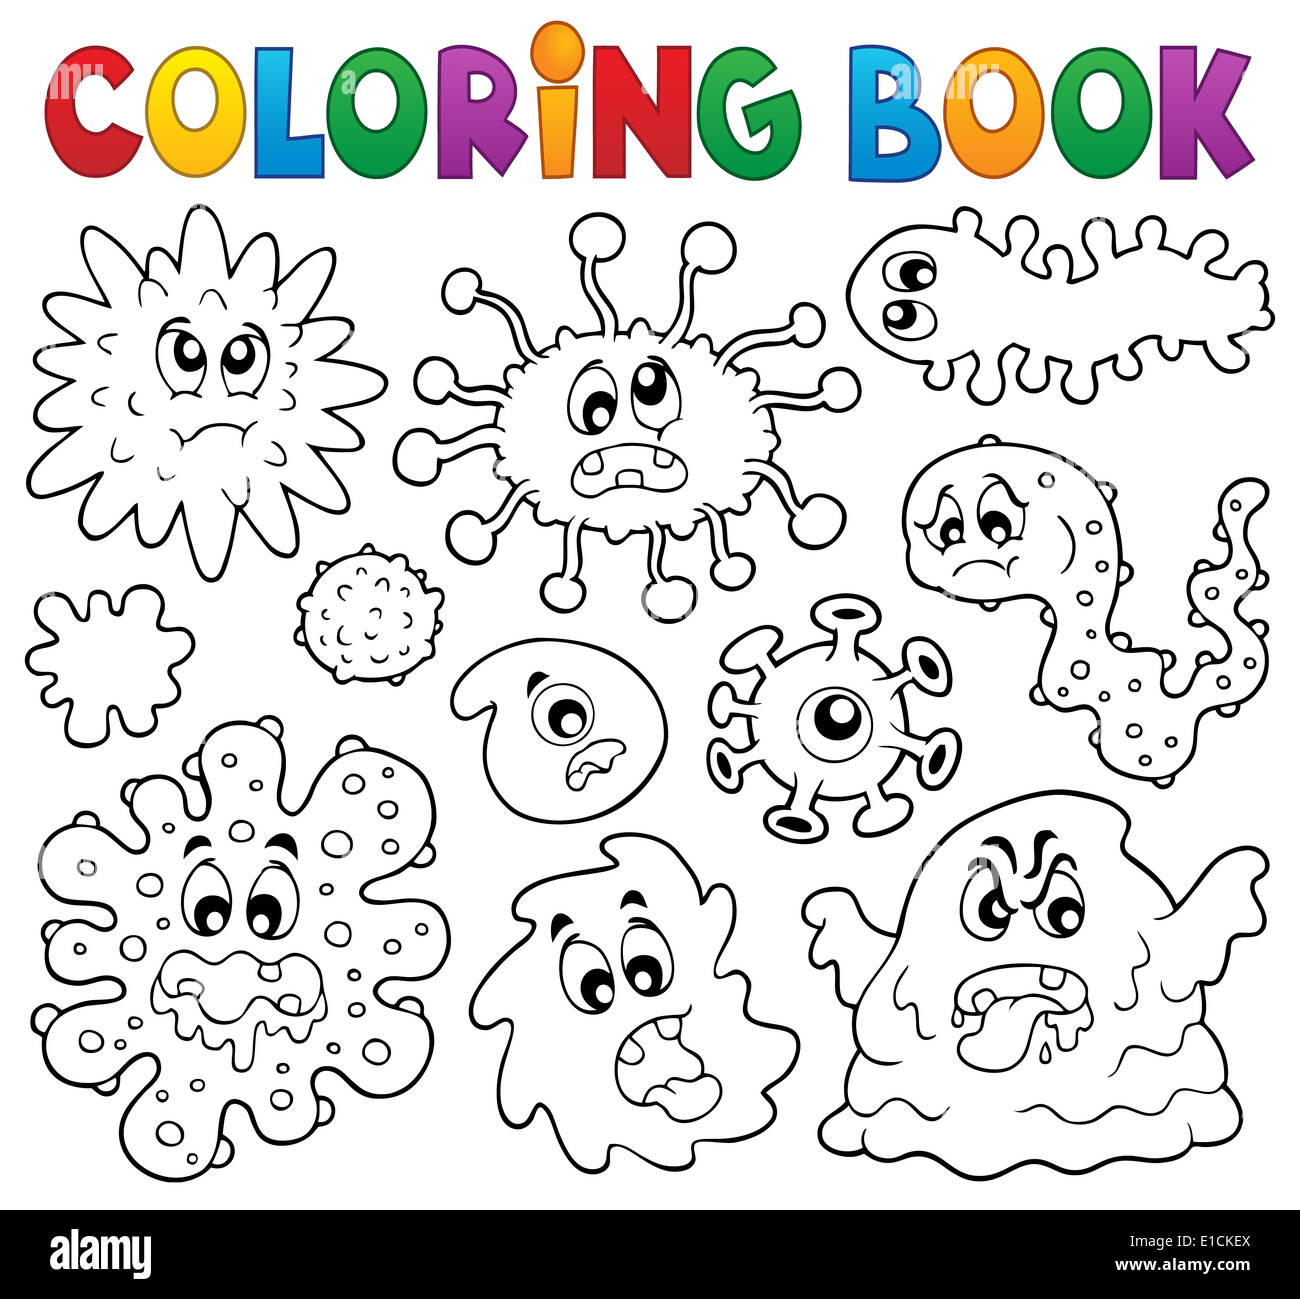 Coloring Book Monster Theme Picture Stockfotos & Coloring Book ...